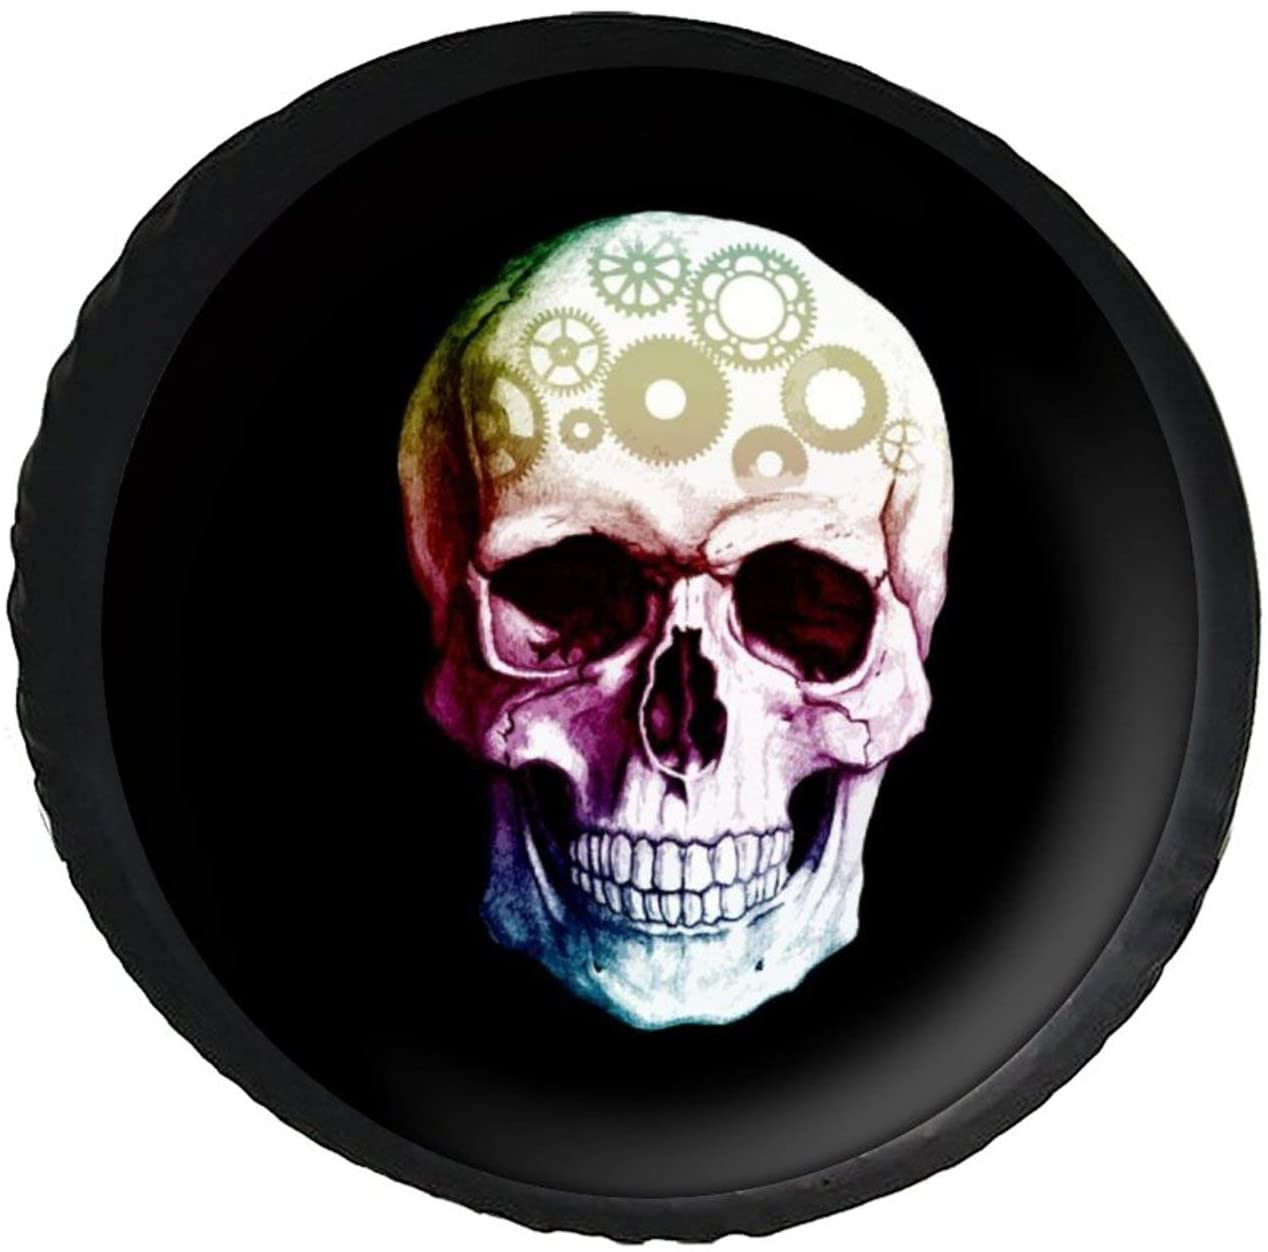 DONL9BAUER Spare Tire Cover Gear Head Skull Universal Leather Spare Wheel Cover Sugar Skull Sunproof Tire Covers for Je_ep Trailer RV SUV Truck Camper Travel and Many Vehicles(14